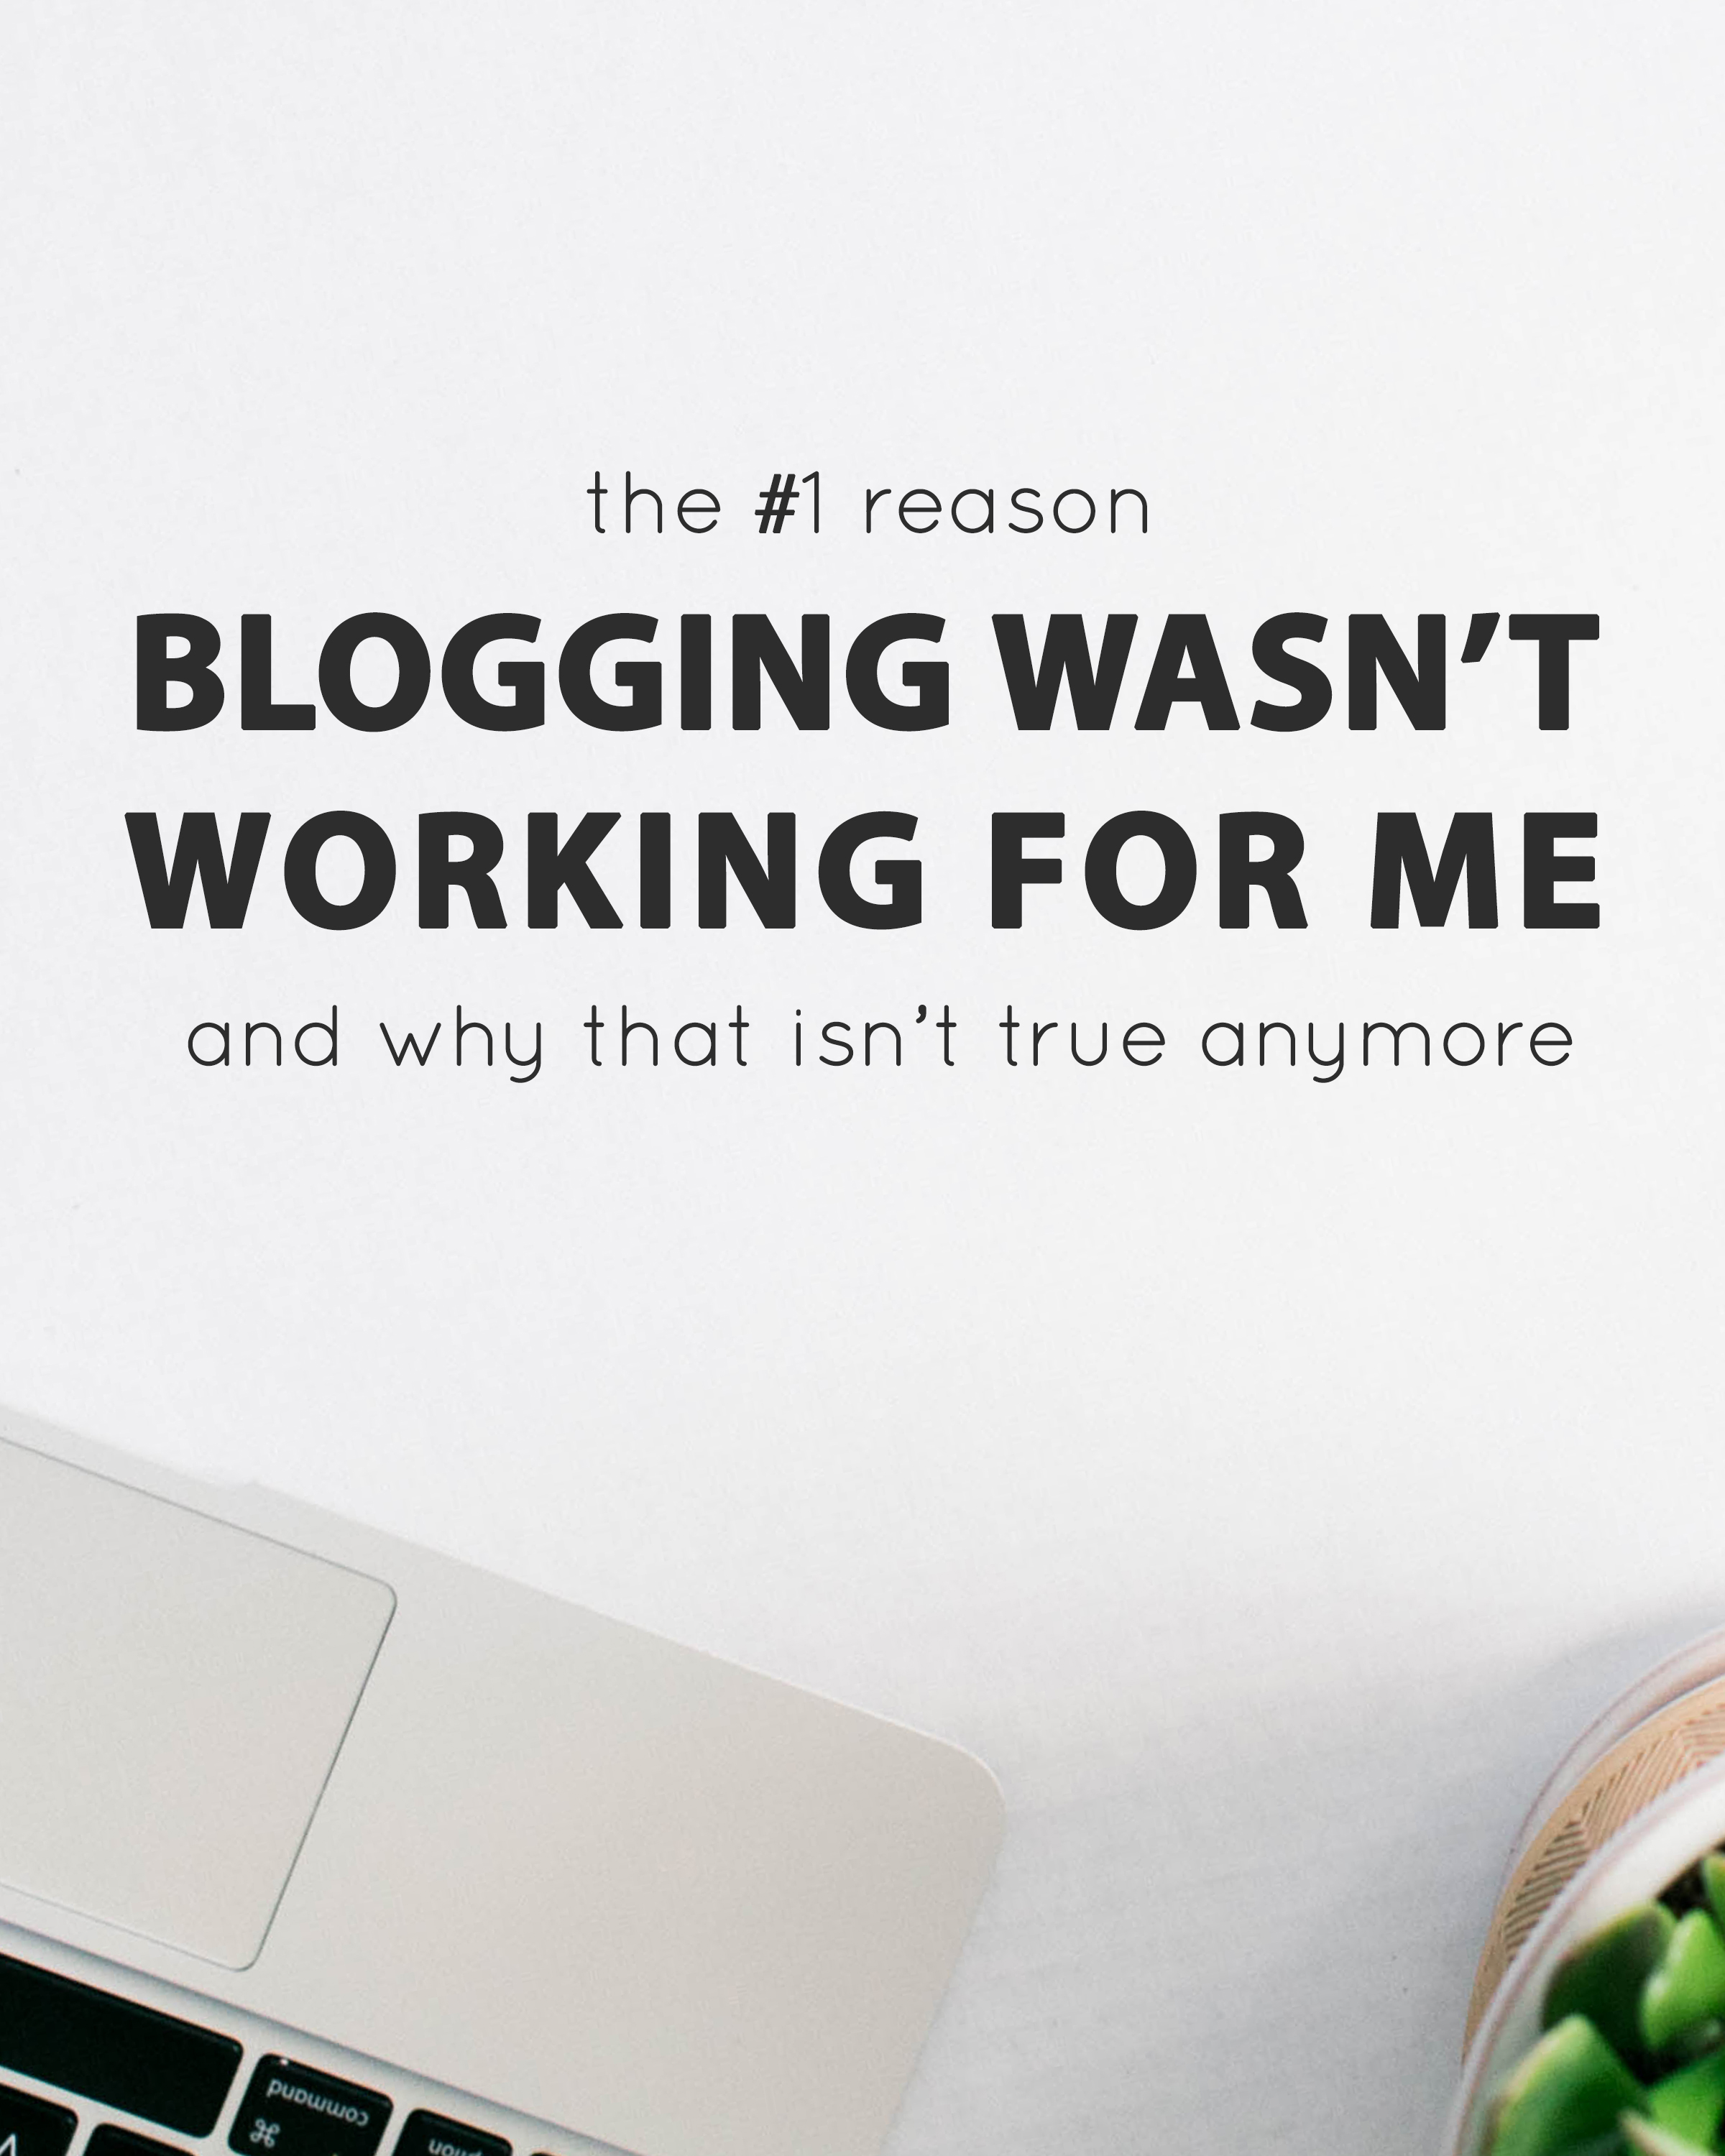 Number one reason blogging wasn't working for me and why that isn't true anymore - The Jordan Brittley Blog (www.jordanbrittleyblog.com)